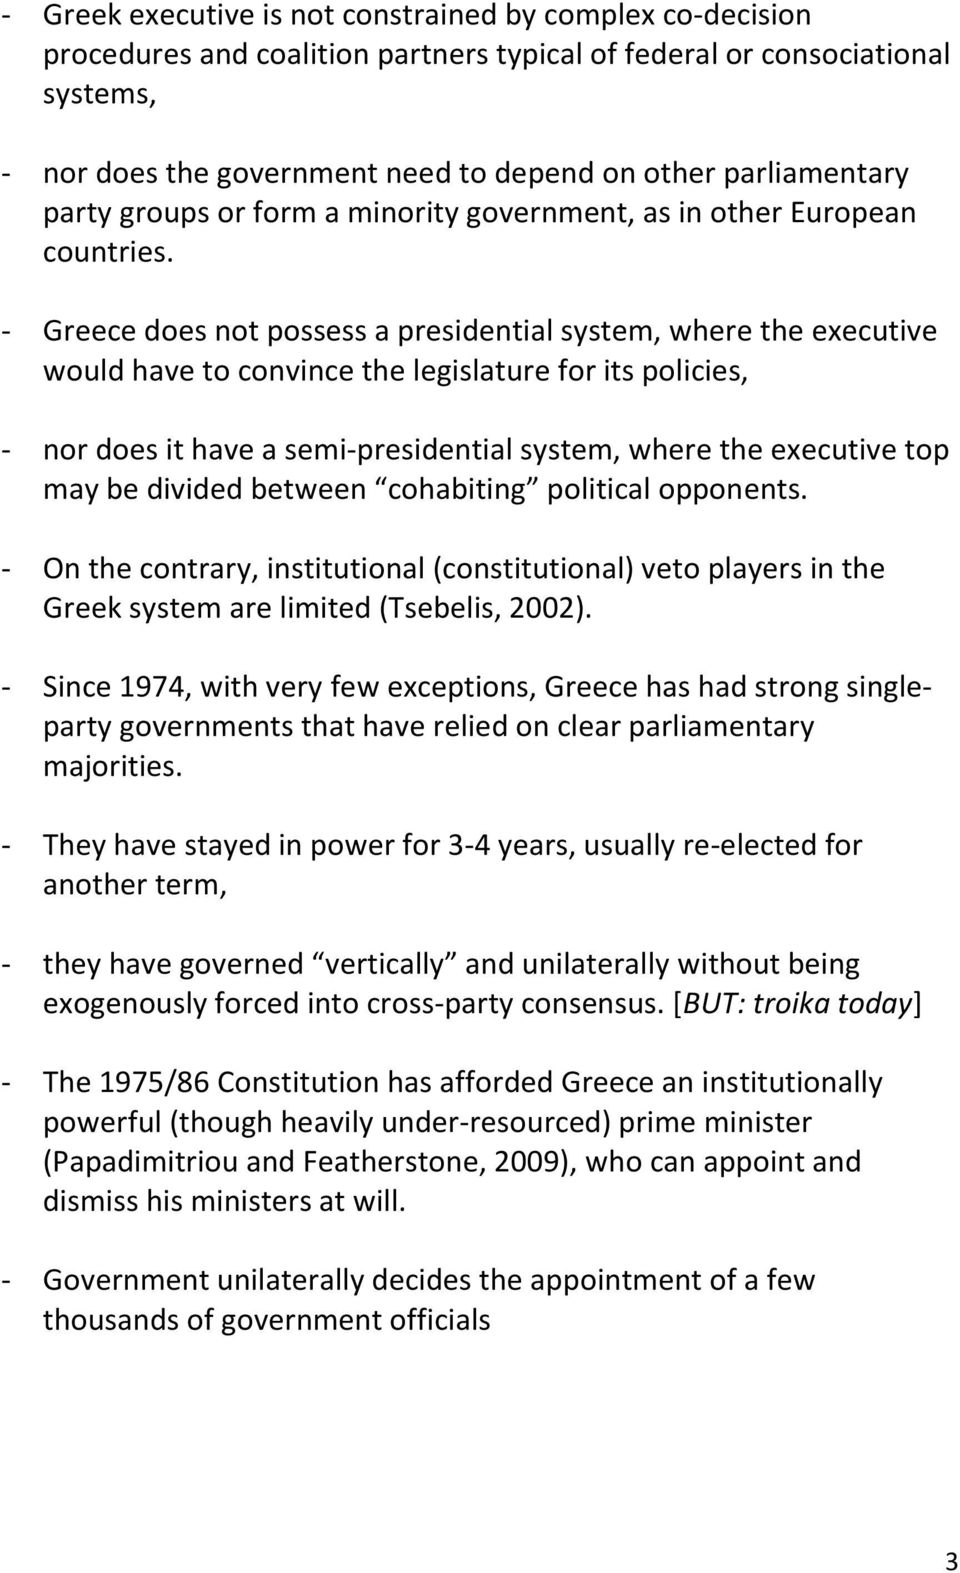 - Greece does not possess a presidential system, where the executive would have to convince the legislature for its policies, - nor does it have a semi-presidential system, where the executive top